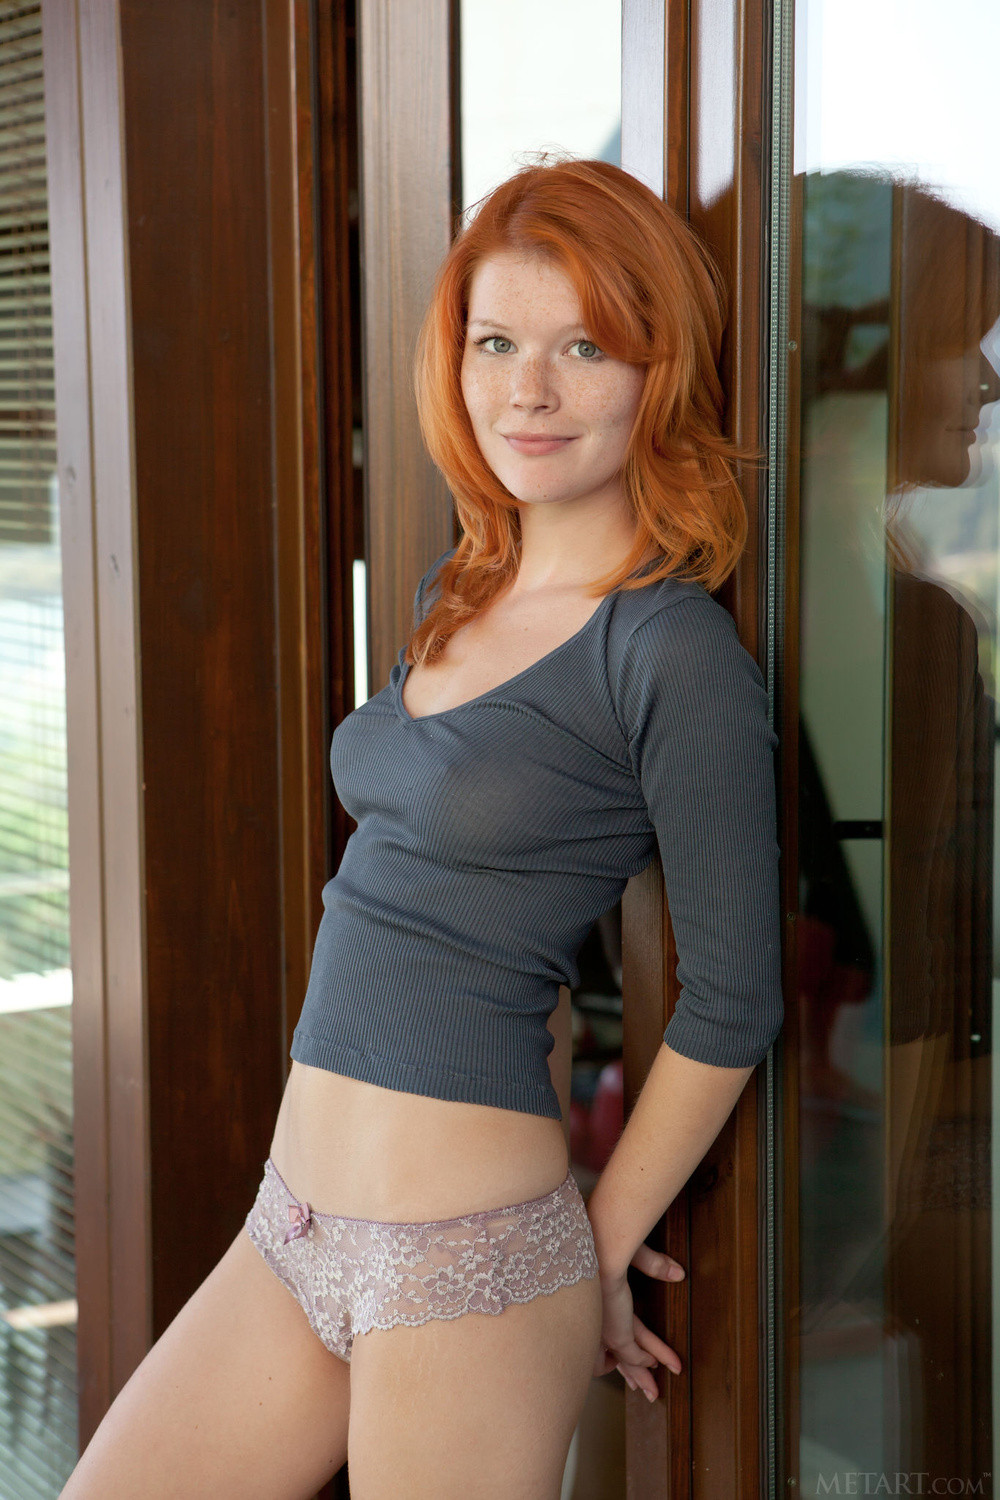 young redhead babe with nipples through tight shirt hot